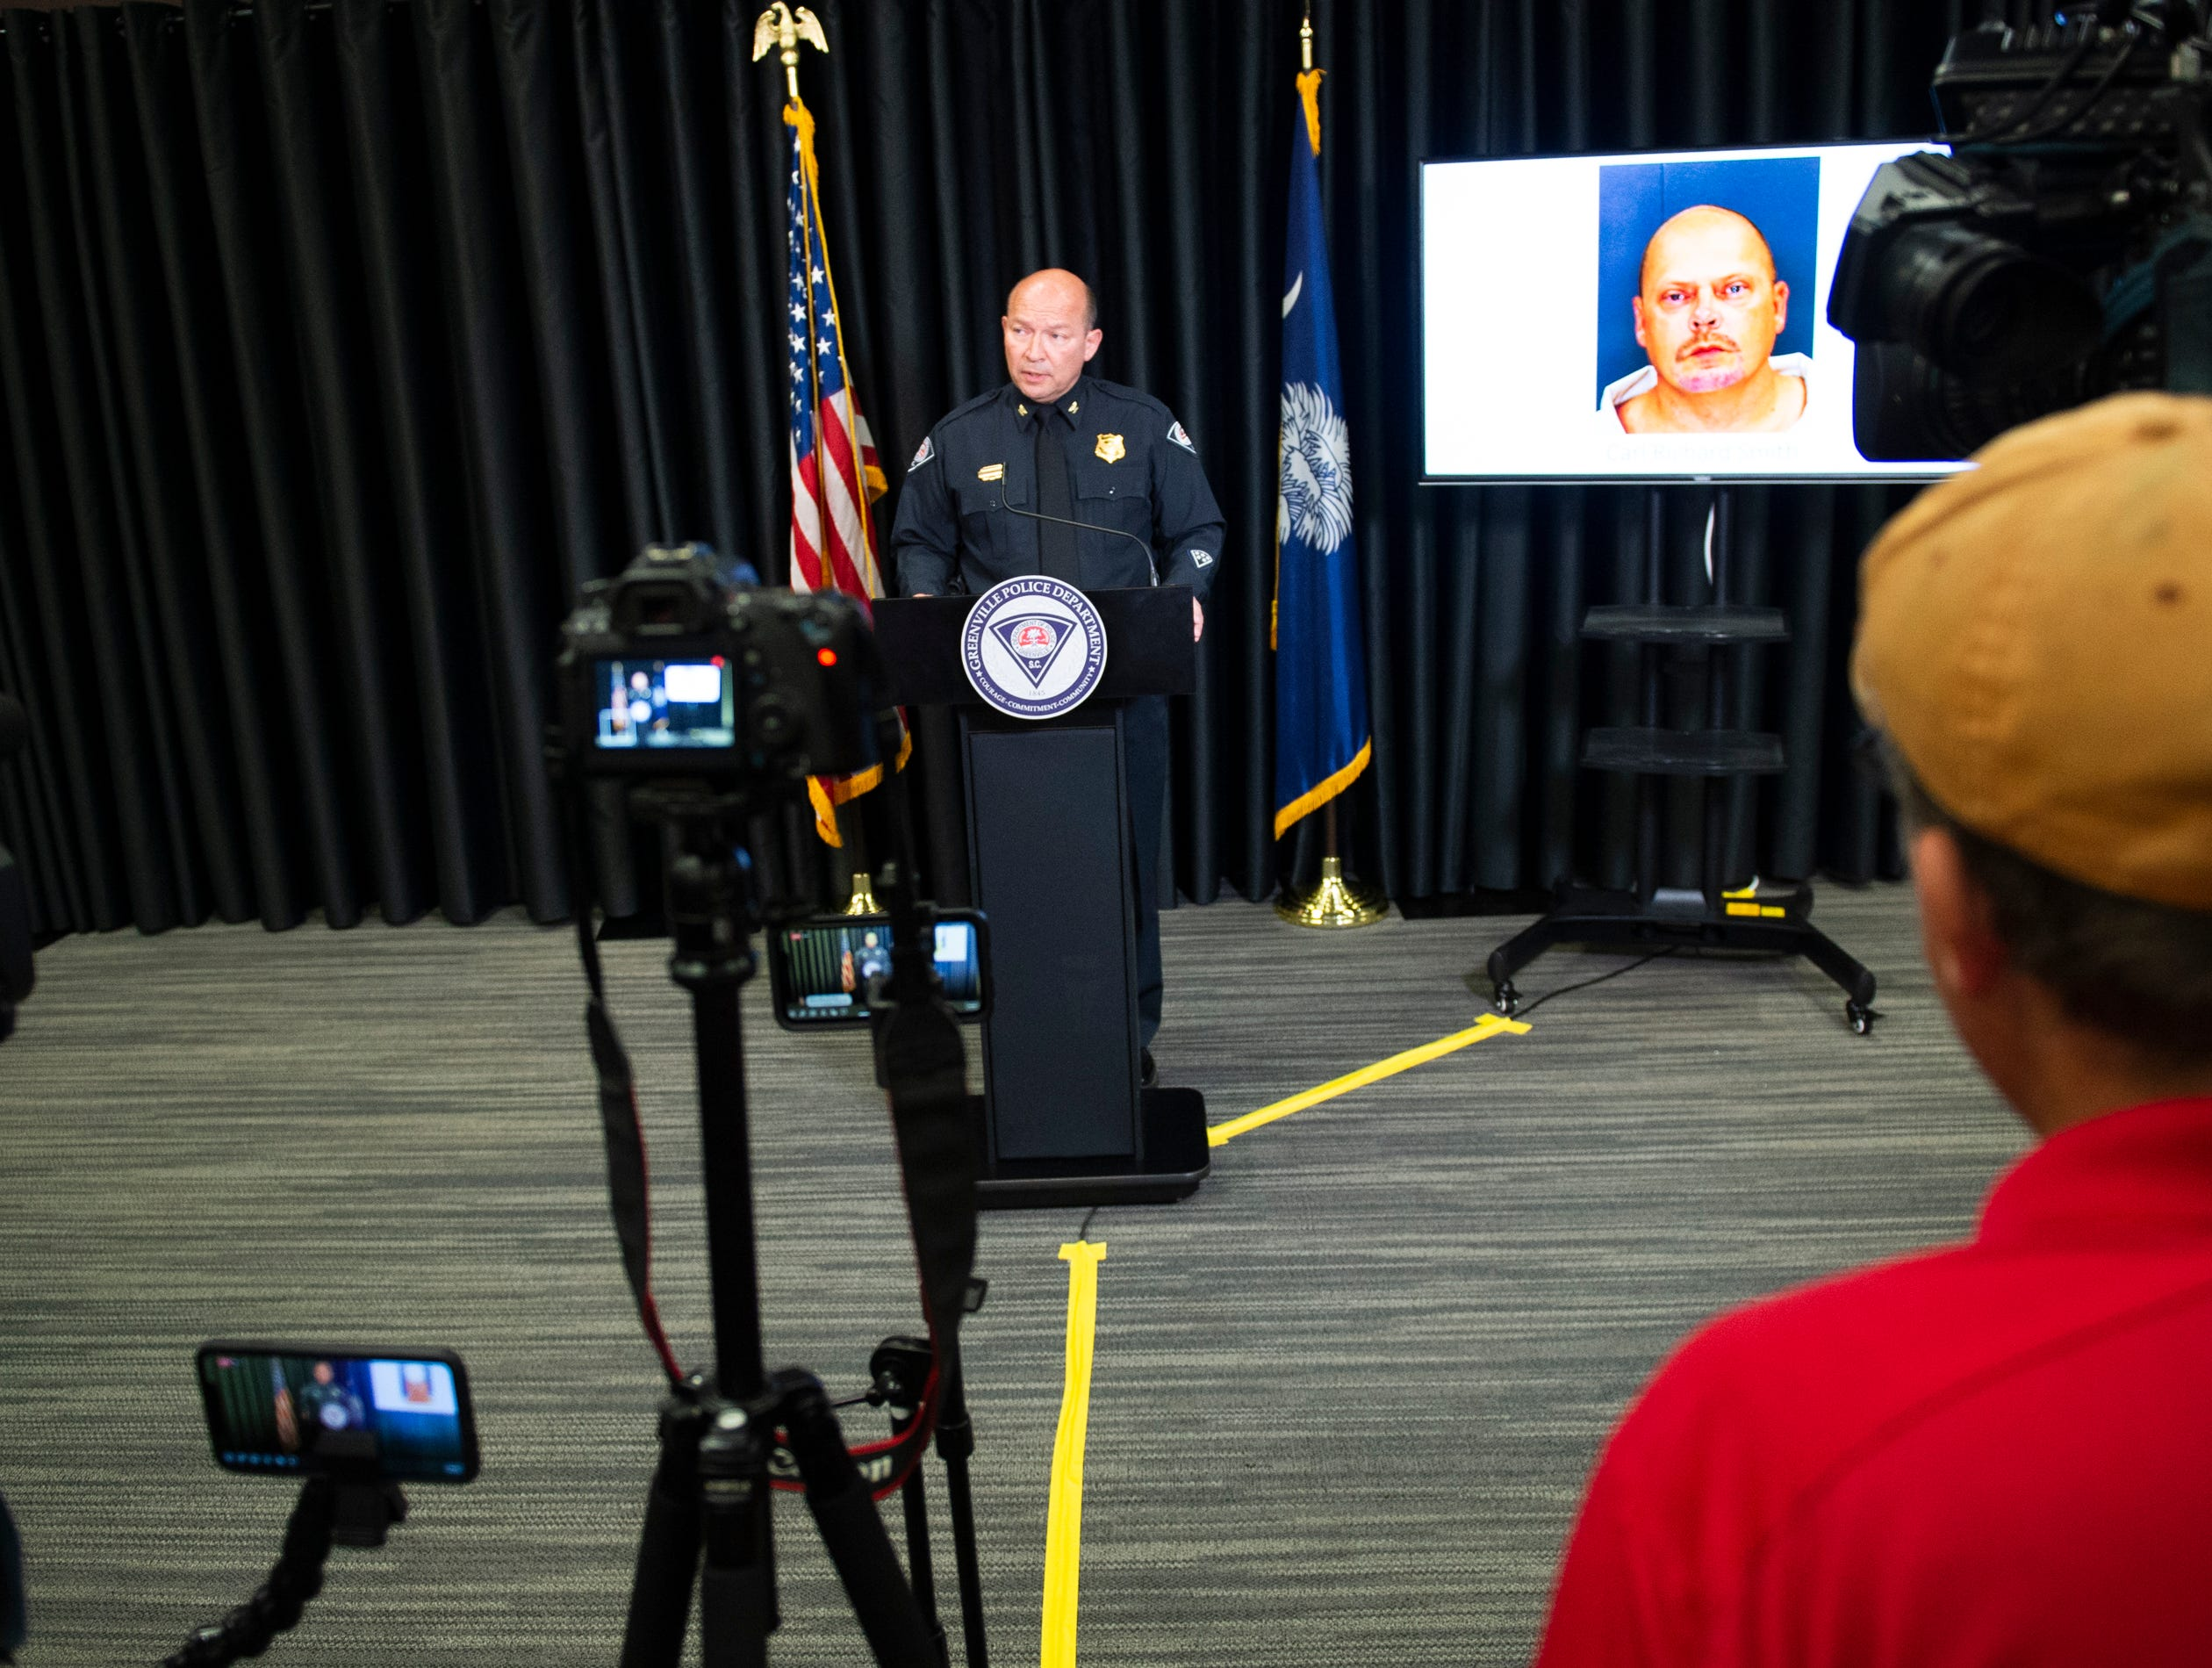 Greenville Chief of Police Ken Miller talks during a press conference at the Greenville Convention Center Friday, May 10, 2019.